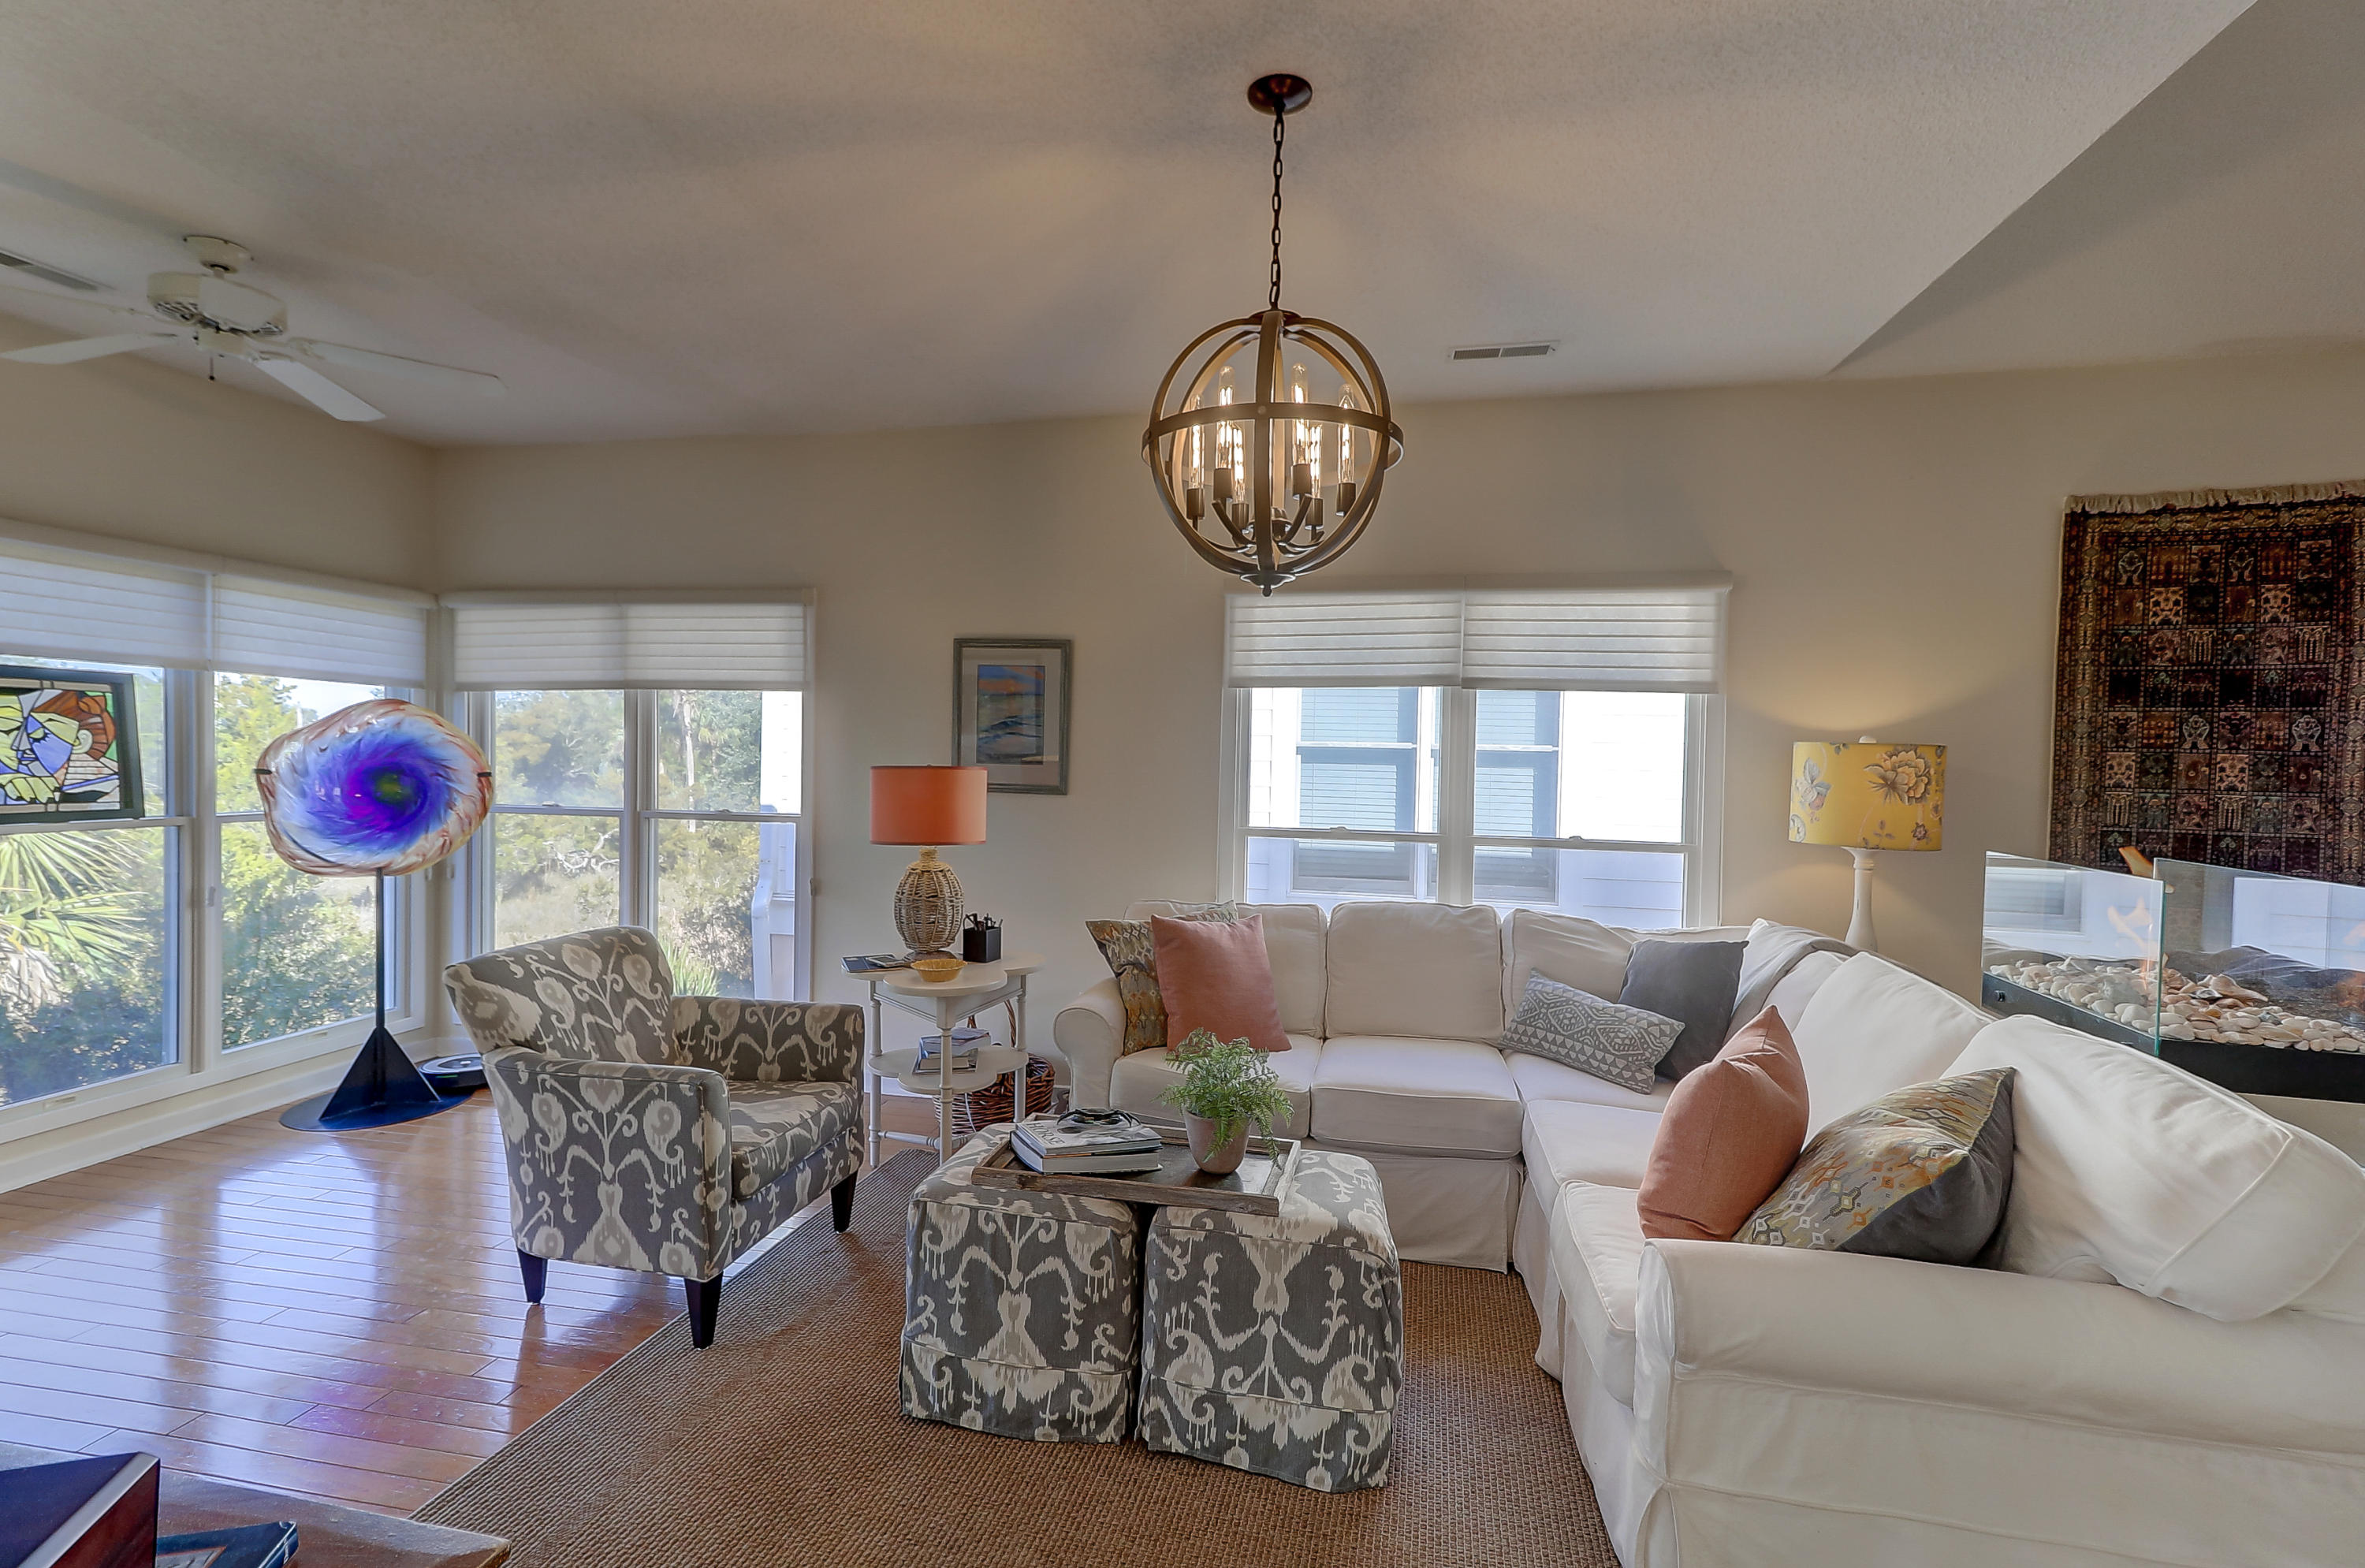 Wild Dunes Resort Homes For Sale - 5 Links Clubhouse, Isle of Palms, SC - 9